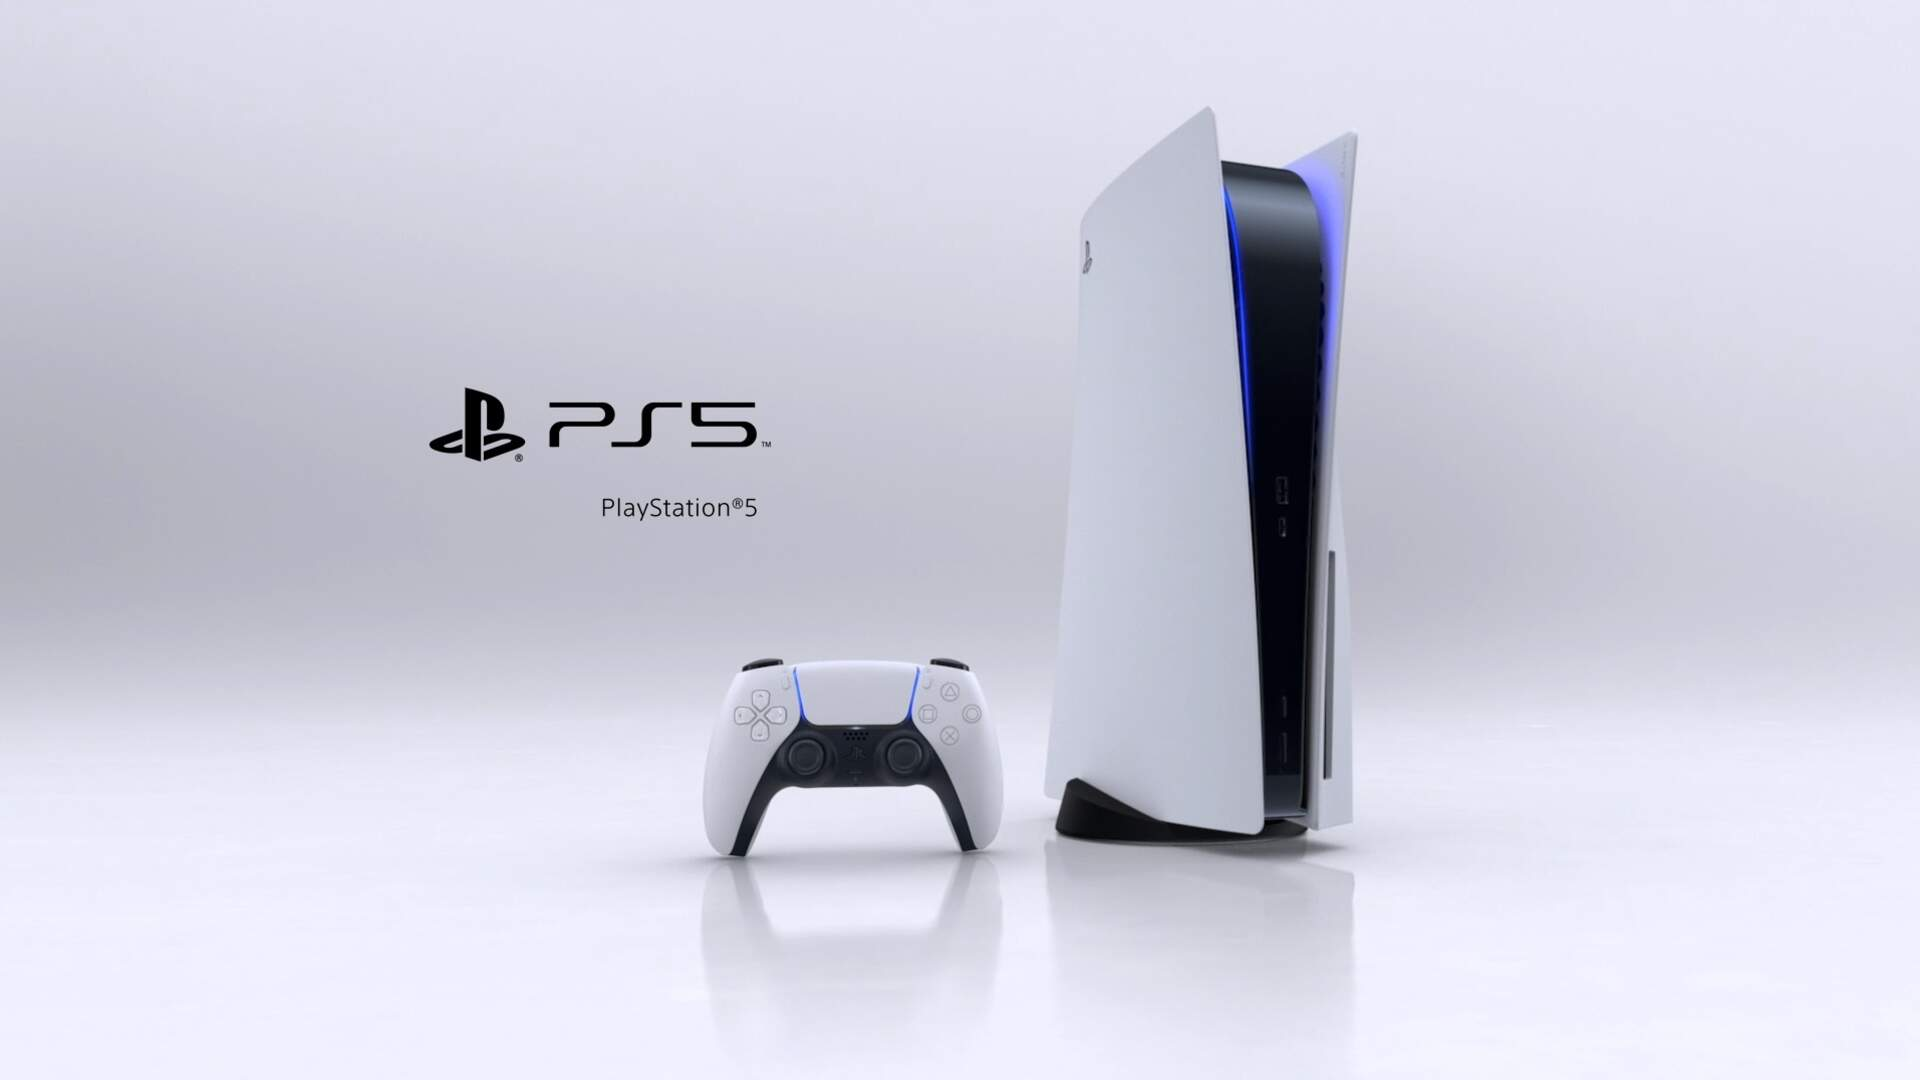 PlayStation 5 Won't Be Backwards Compatible With PS3, PS2, and PS1 Games, Sony Confirms